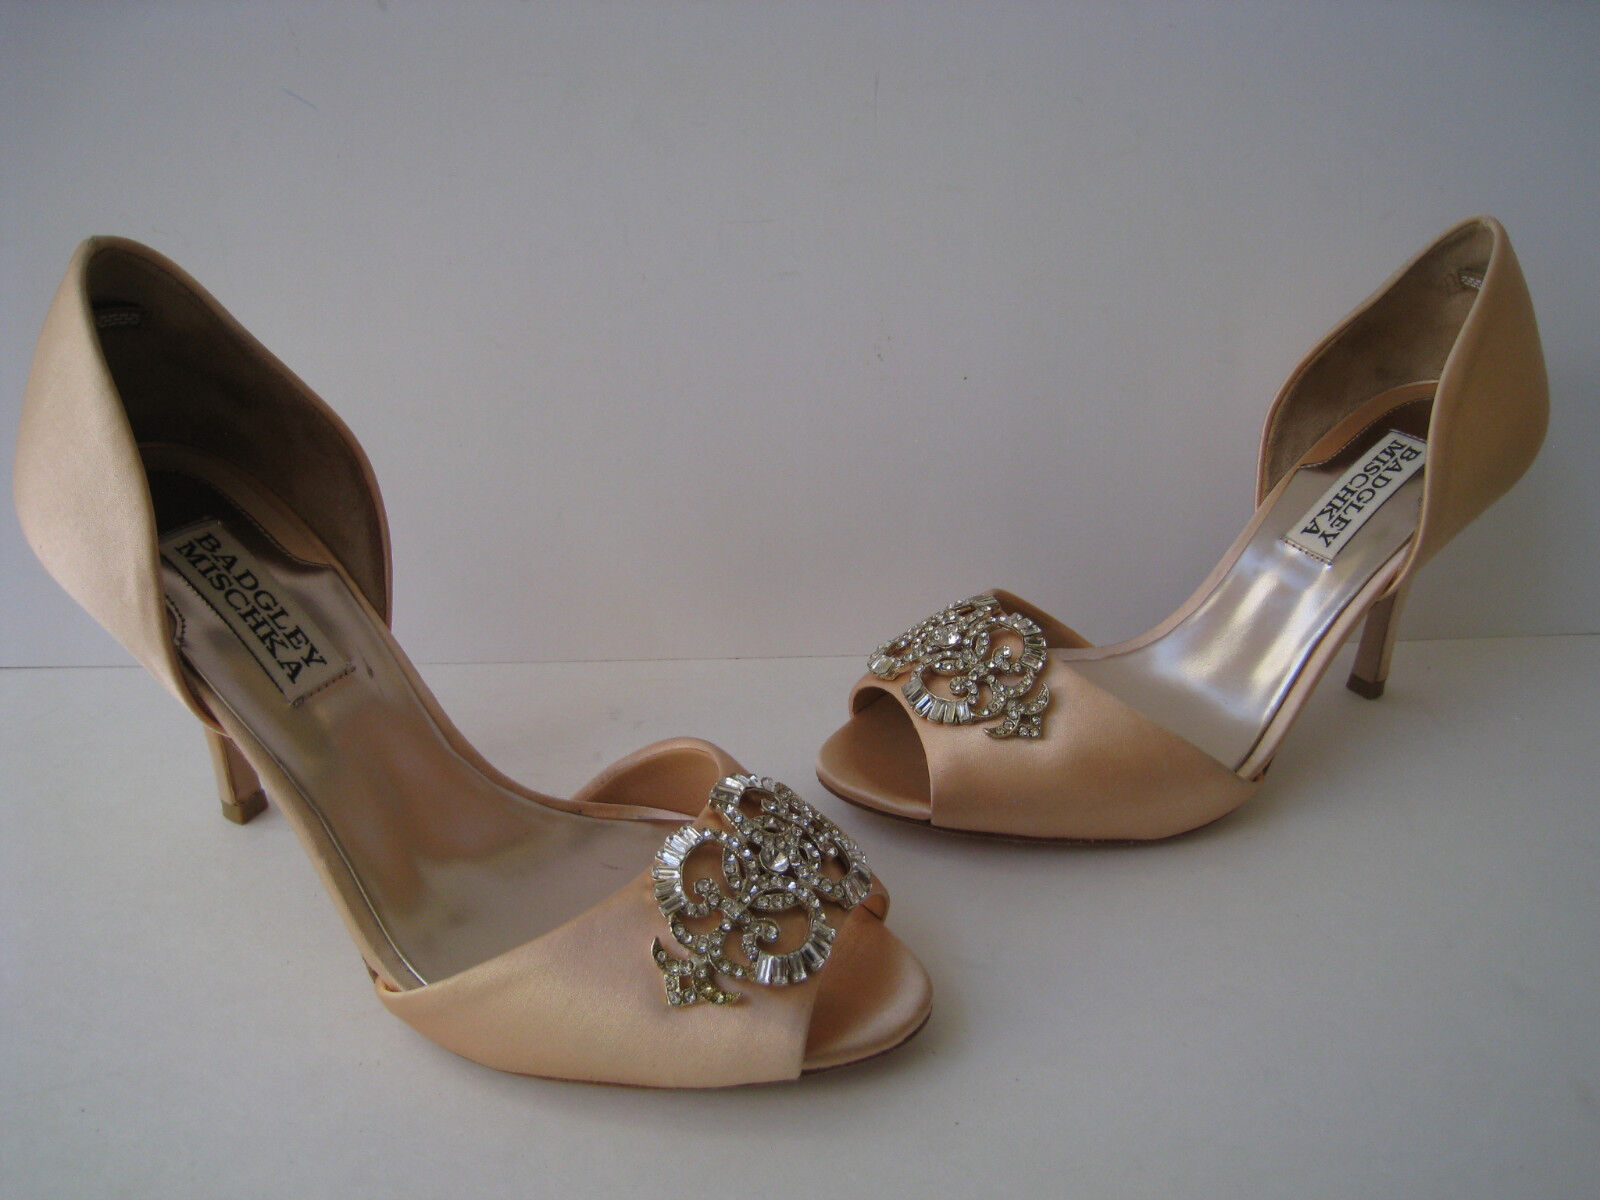 BADGLEY MISCHKA PEACH SATIN CRYSTAL BOW PUMPS 3